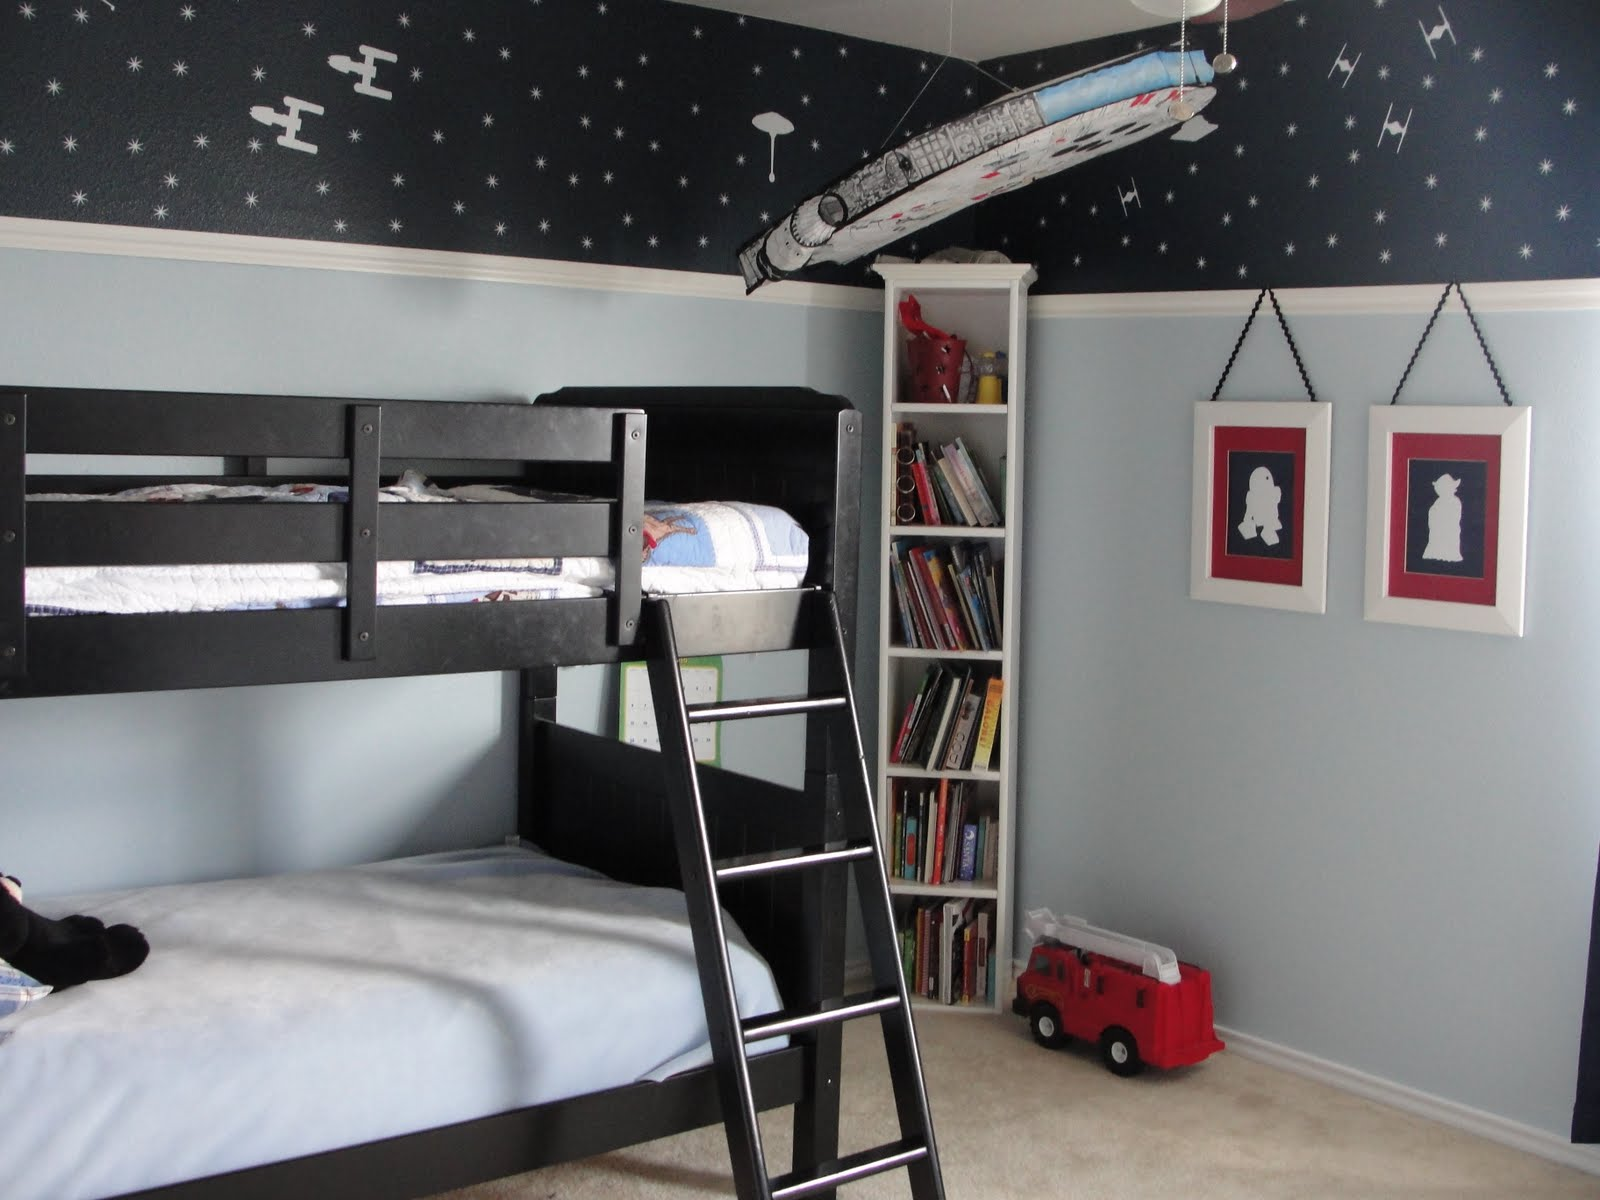 The Boyu0027s Room Star Wars Dream